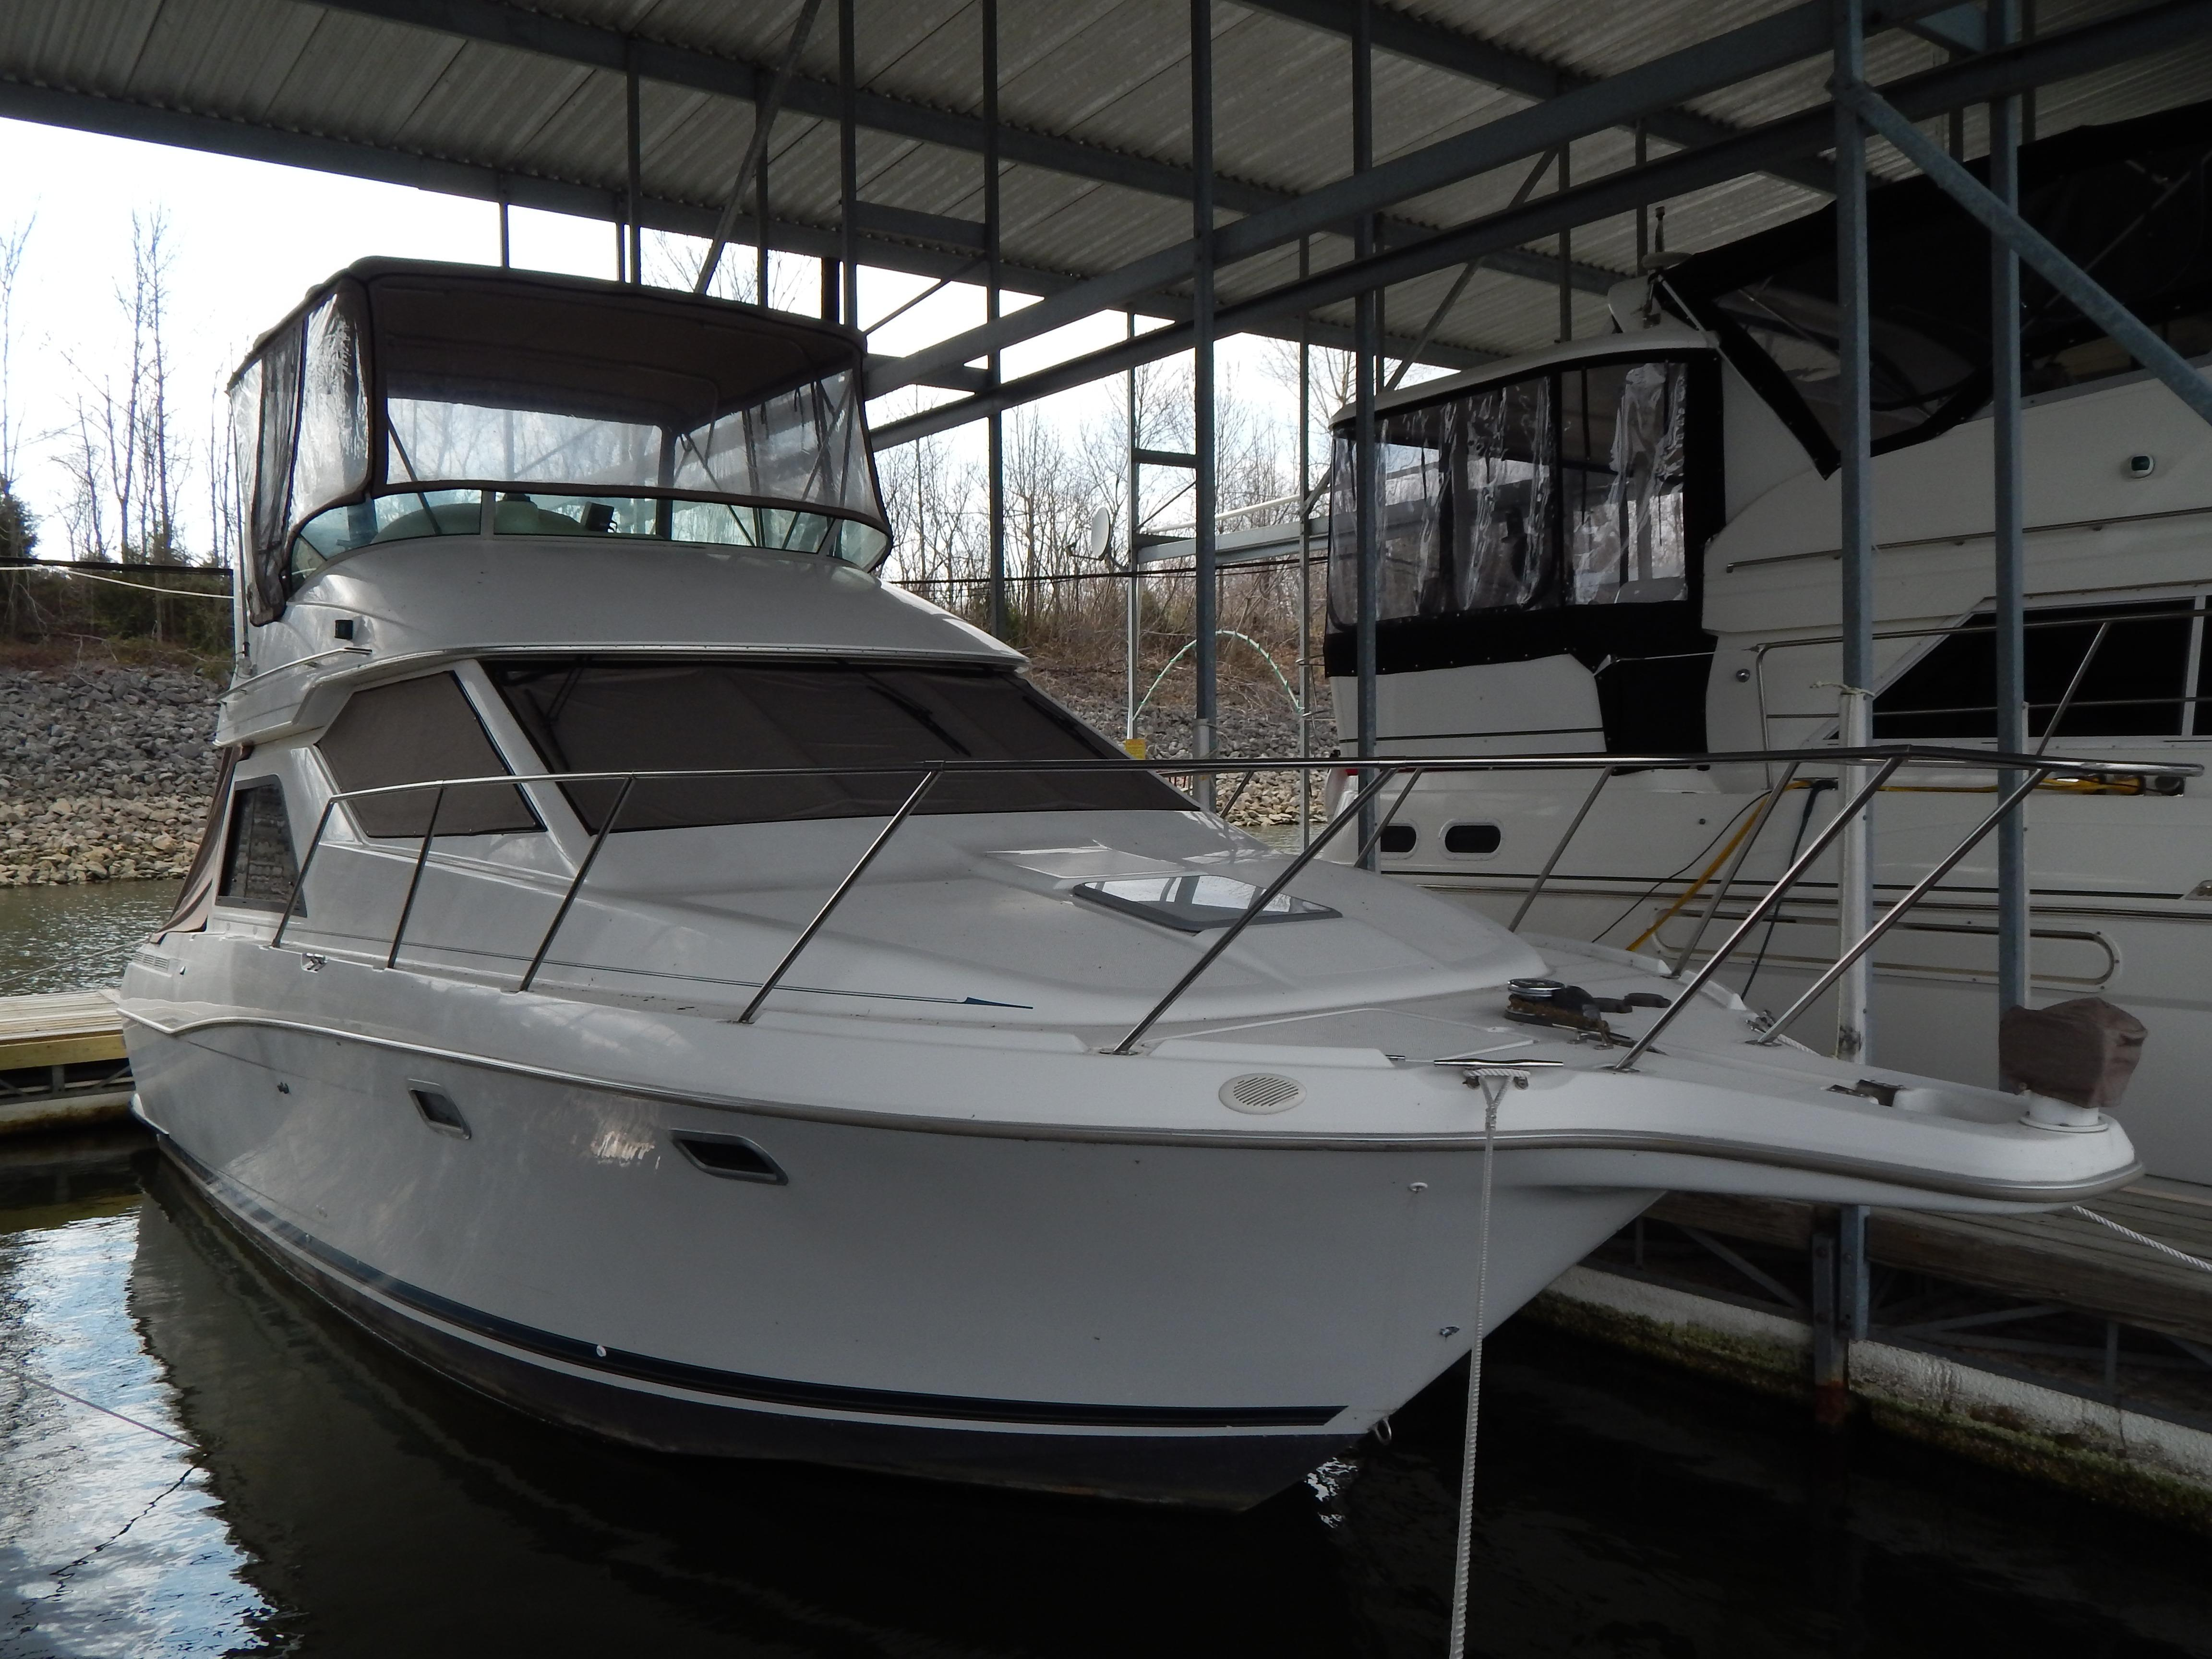 Grand Rivers (KY) United States  city photos : 2001 Bayliner 3258 Command Bridge Power Boat For Sale www.yachtworld ...